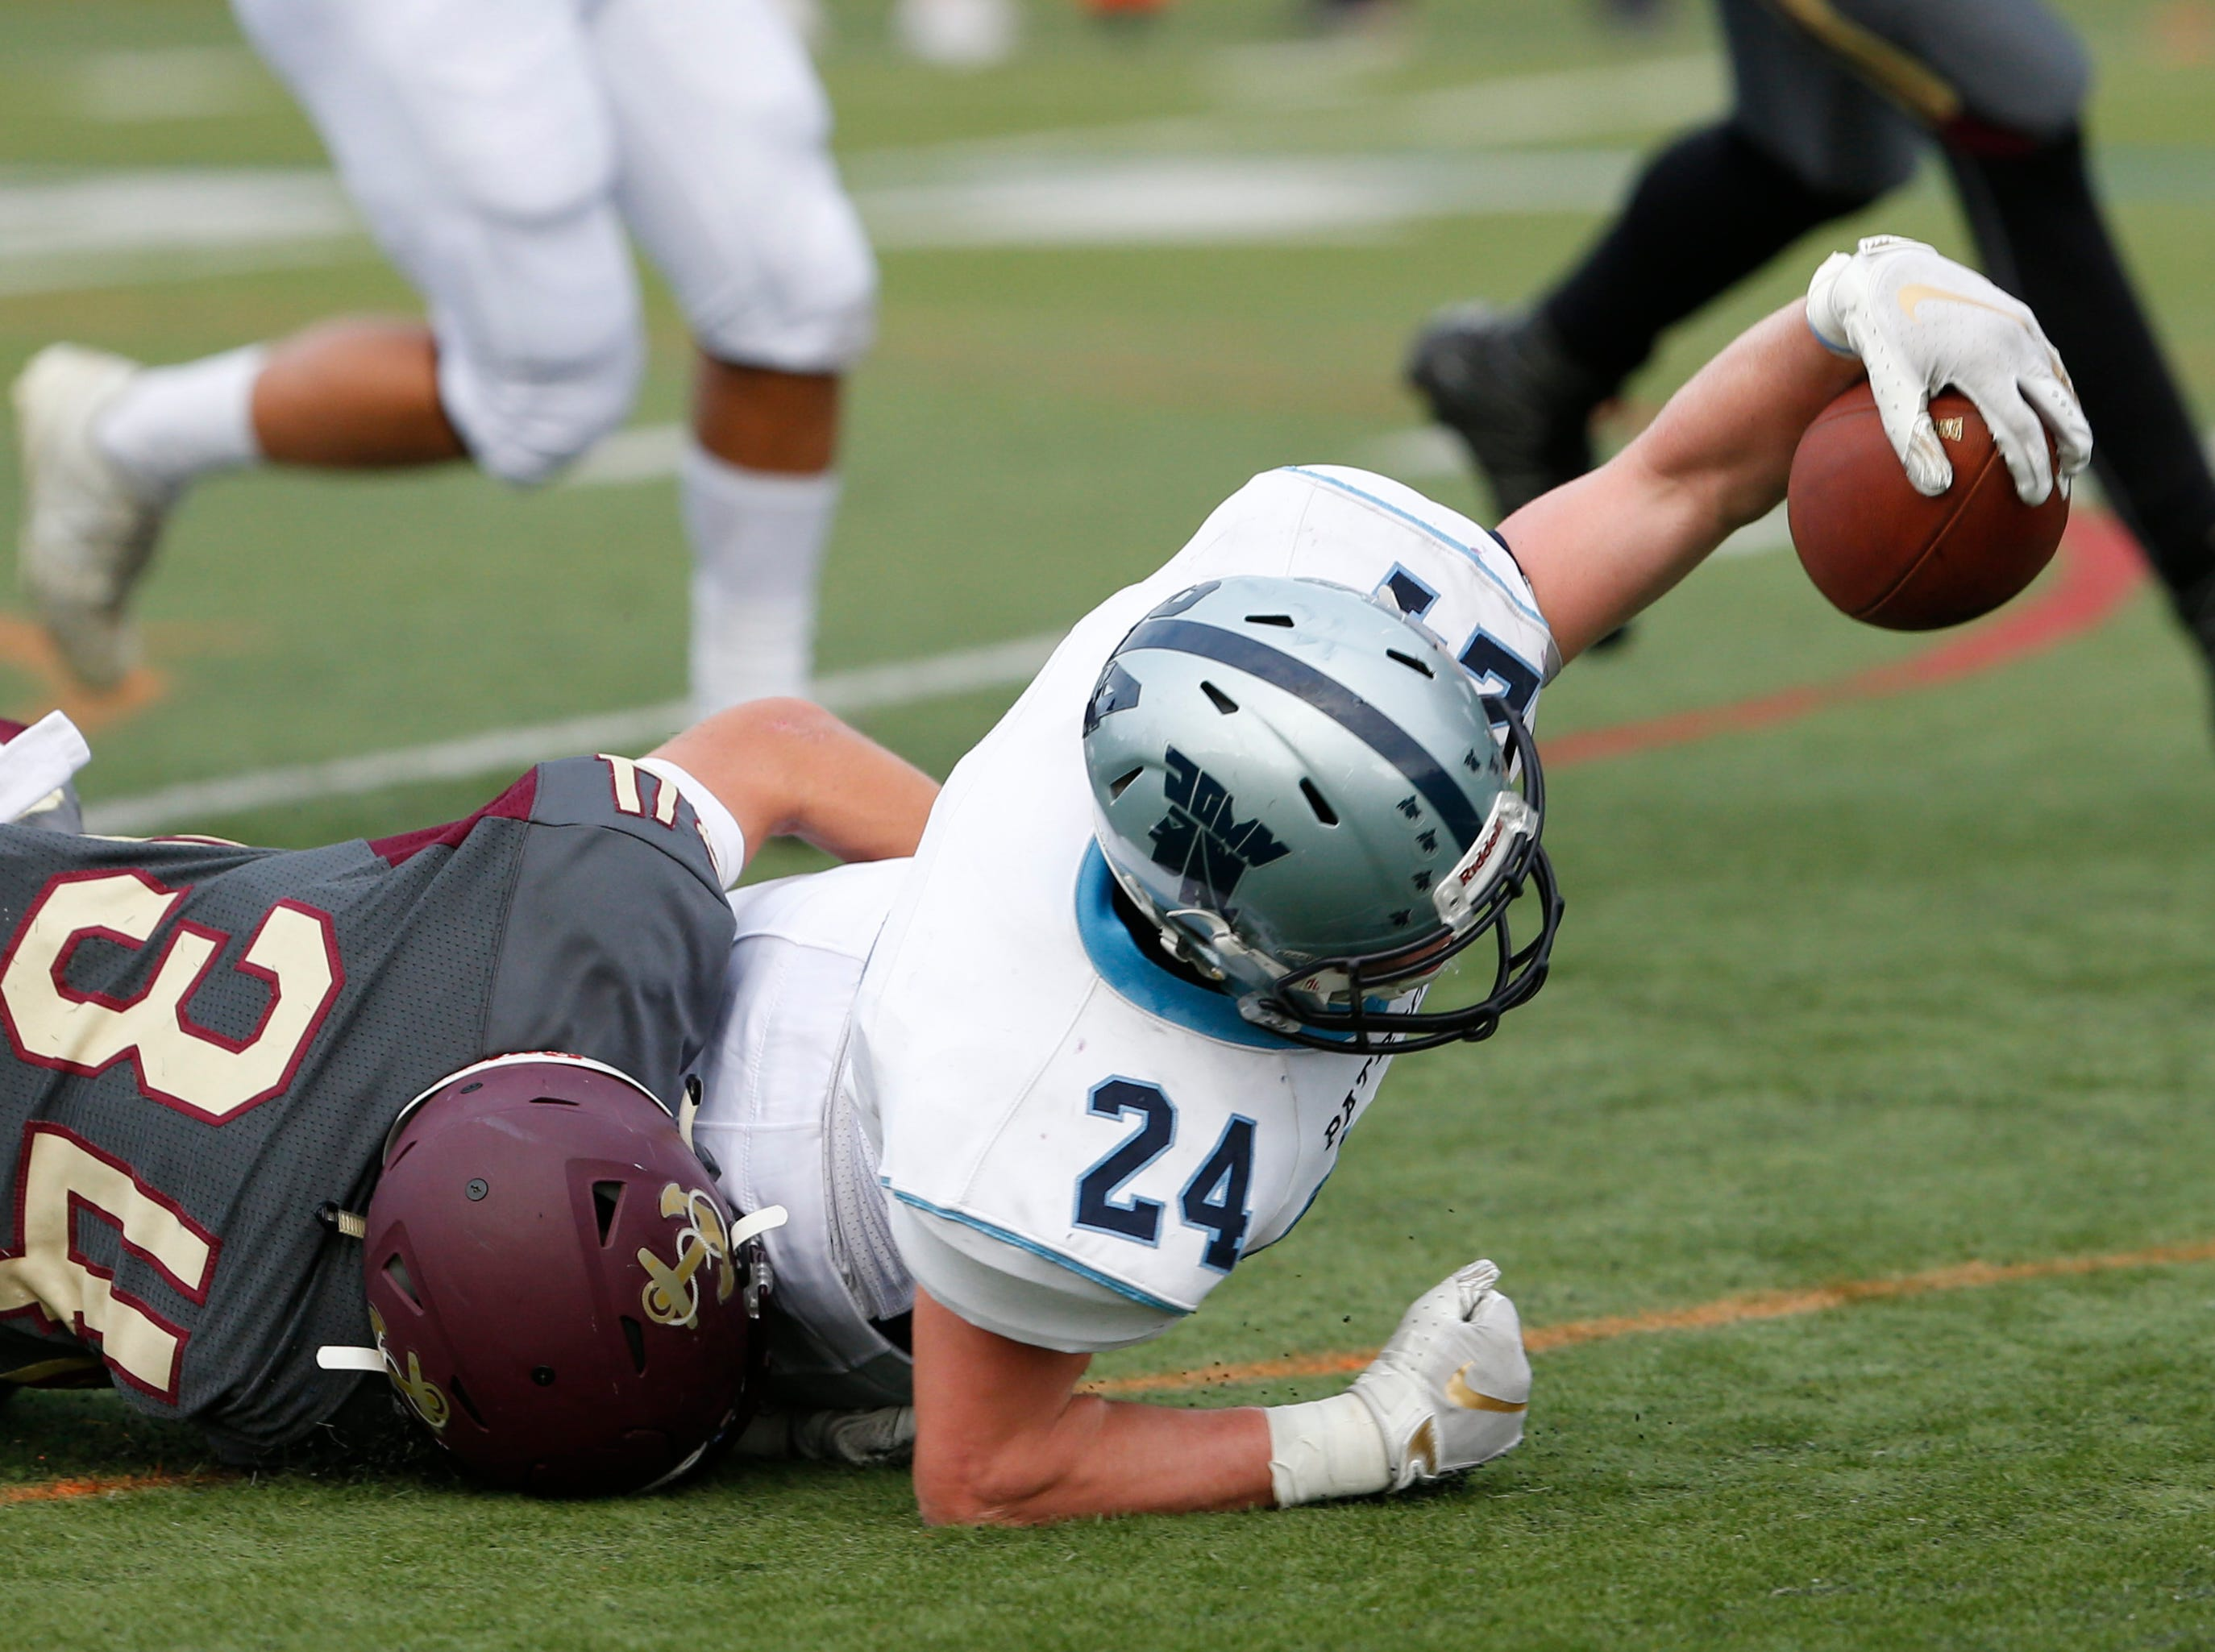 Arlington's Louis Mezzone tackles John Jay's Evan Mullaly as he tries to get every inch out of his rush during Friday's game in Freedom Plains Sept 14, 2018.